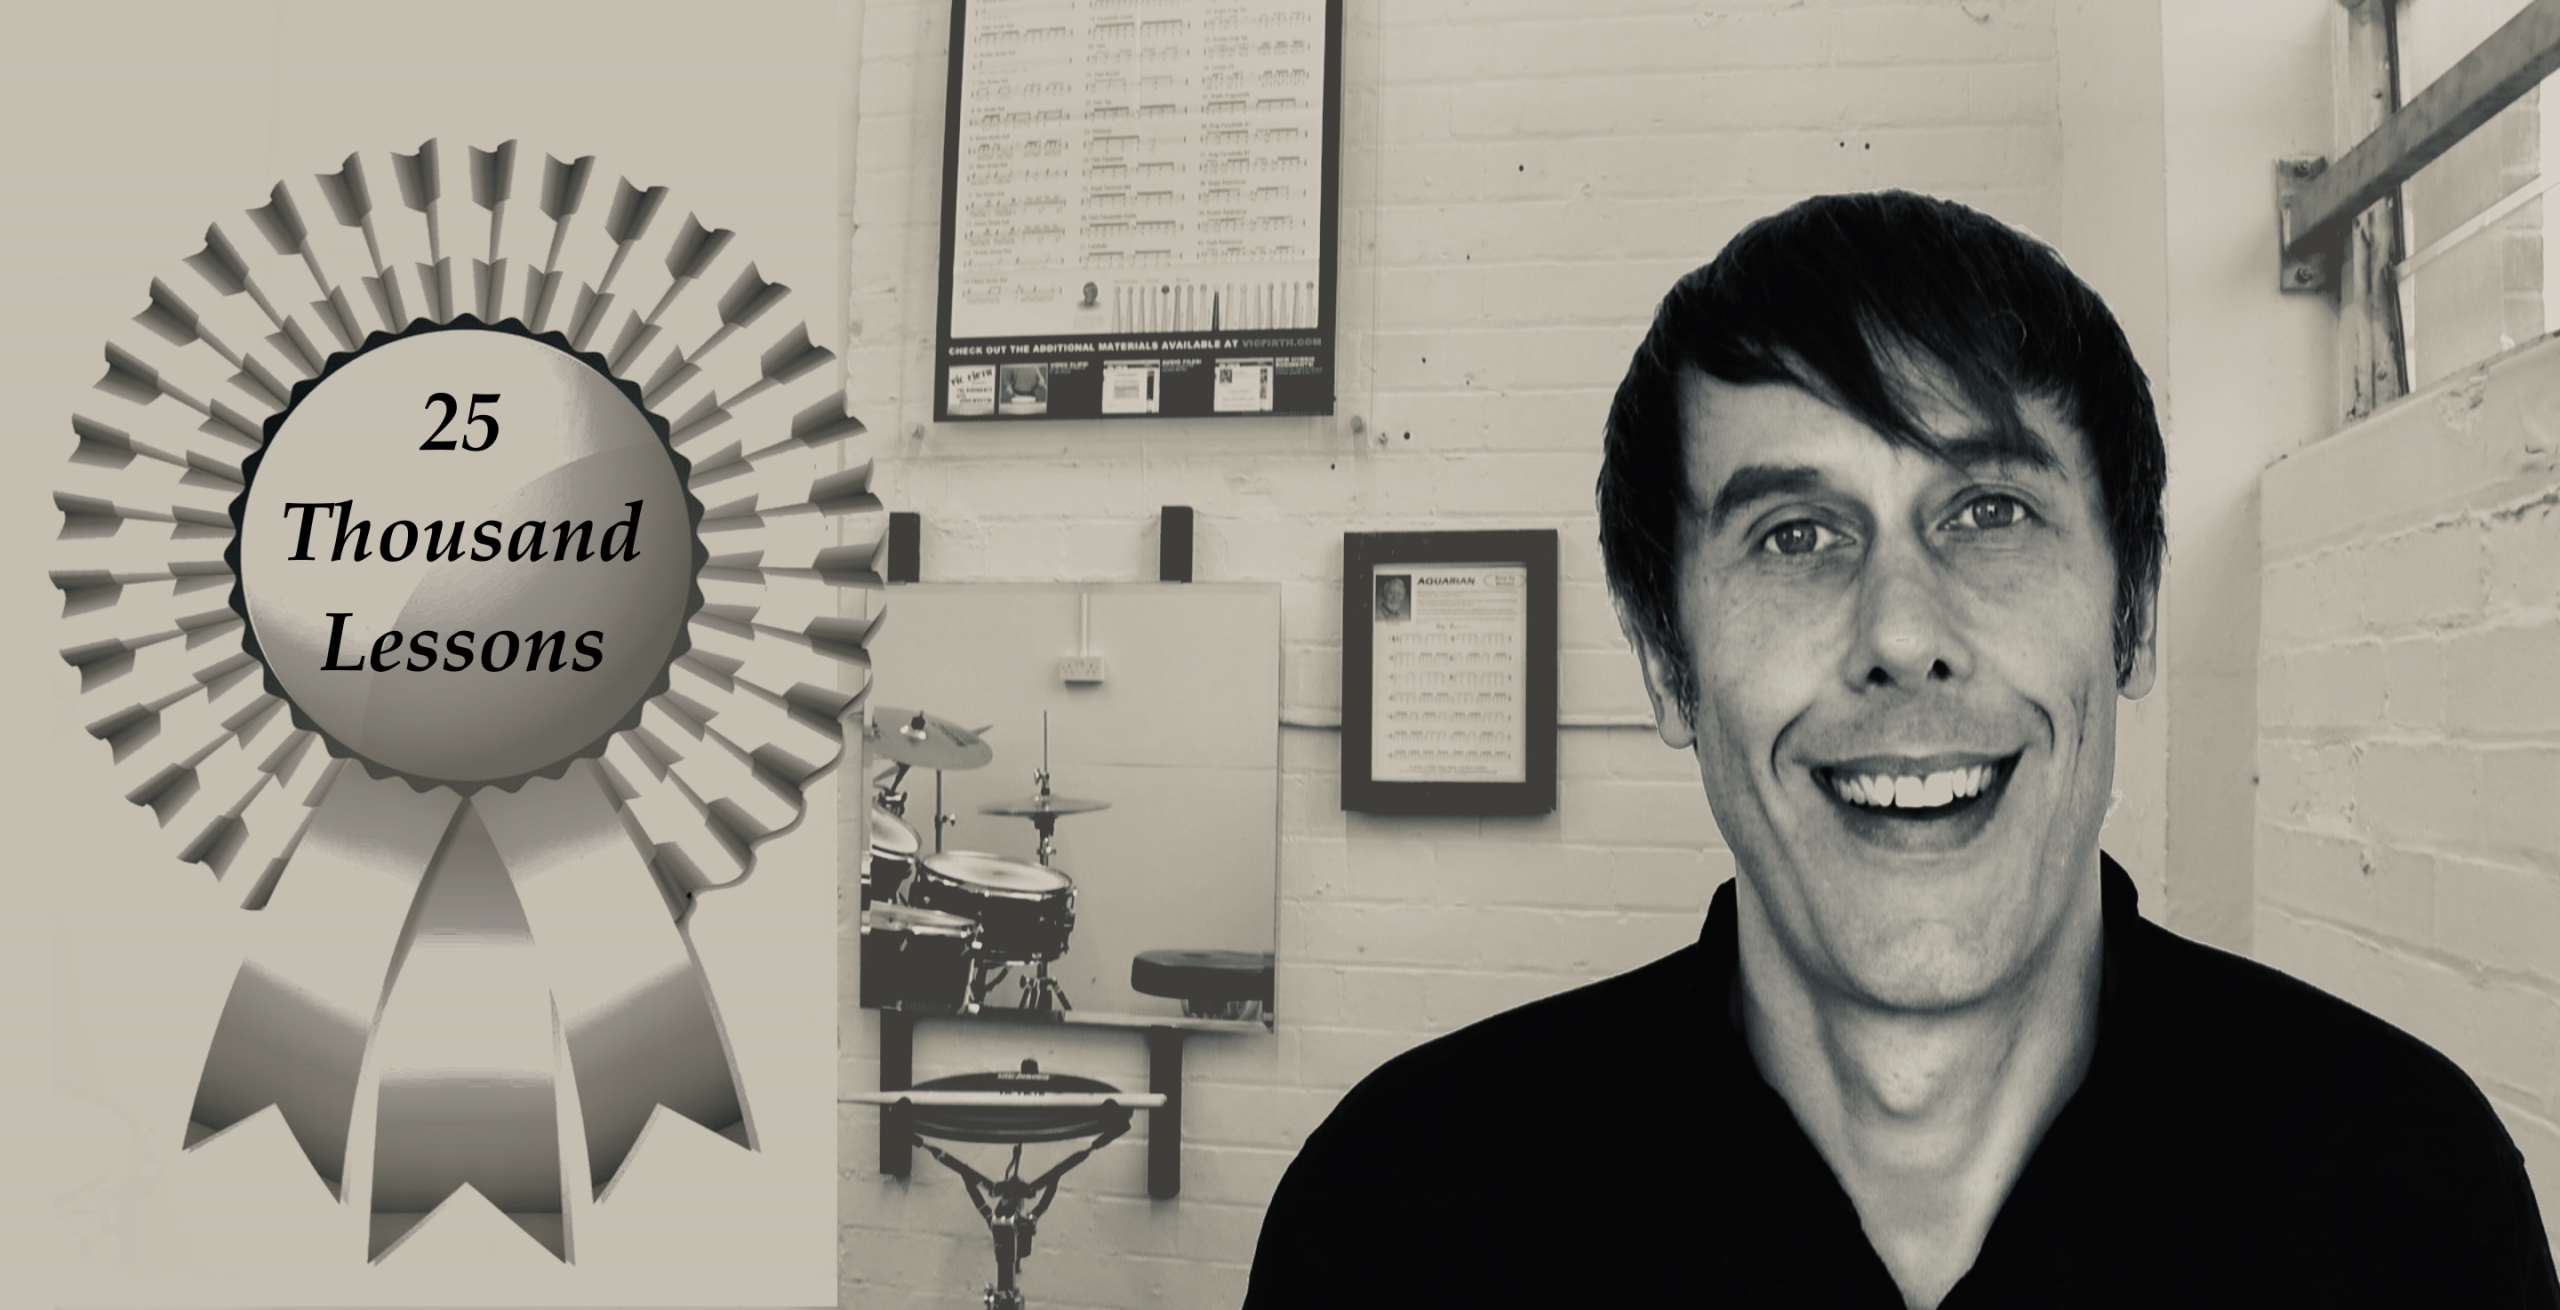 Lee Allatson with rosette celebrating 25,000 drum lessons